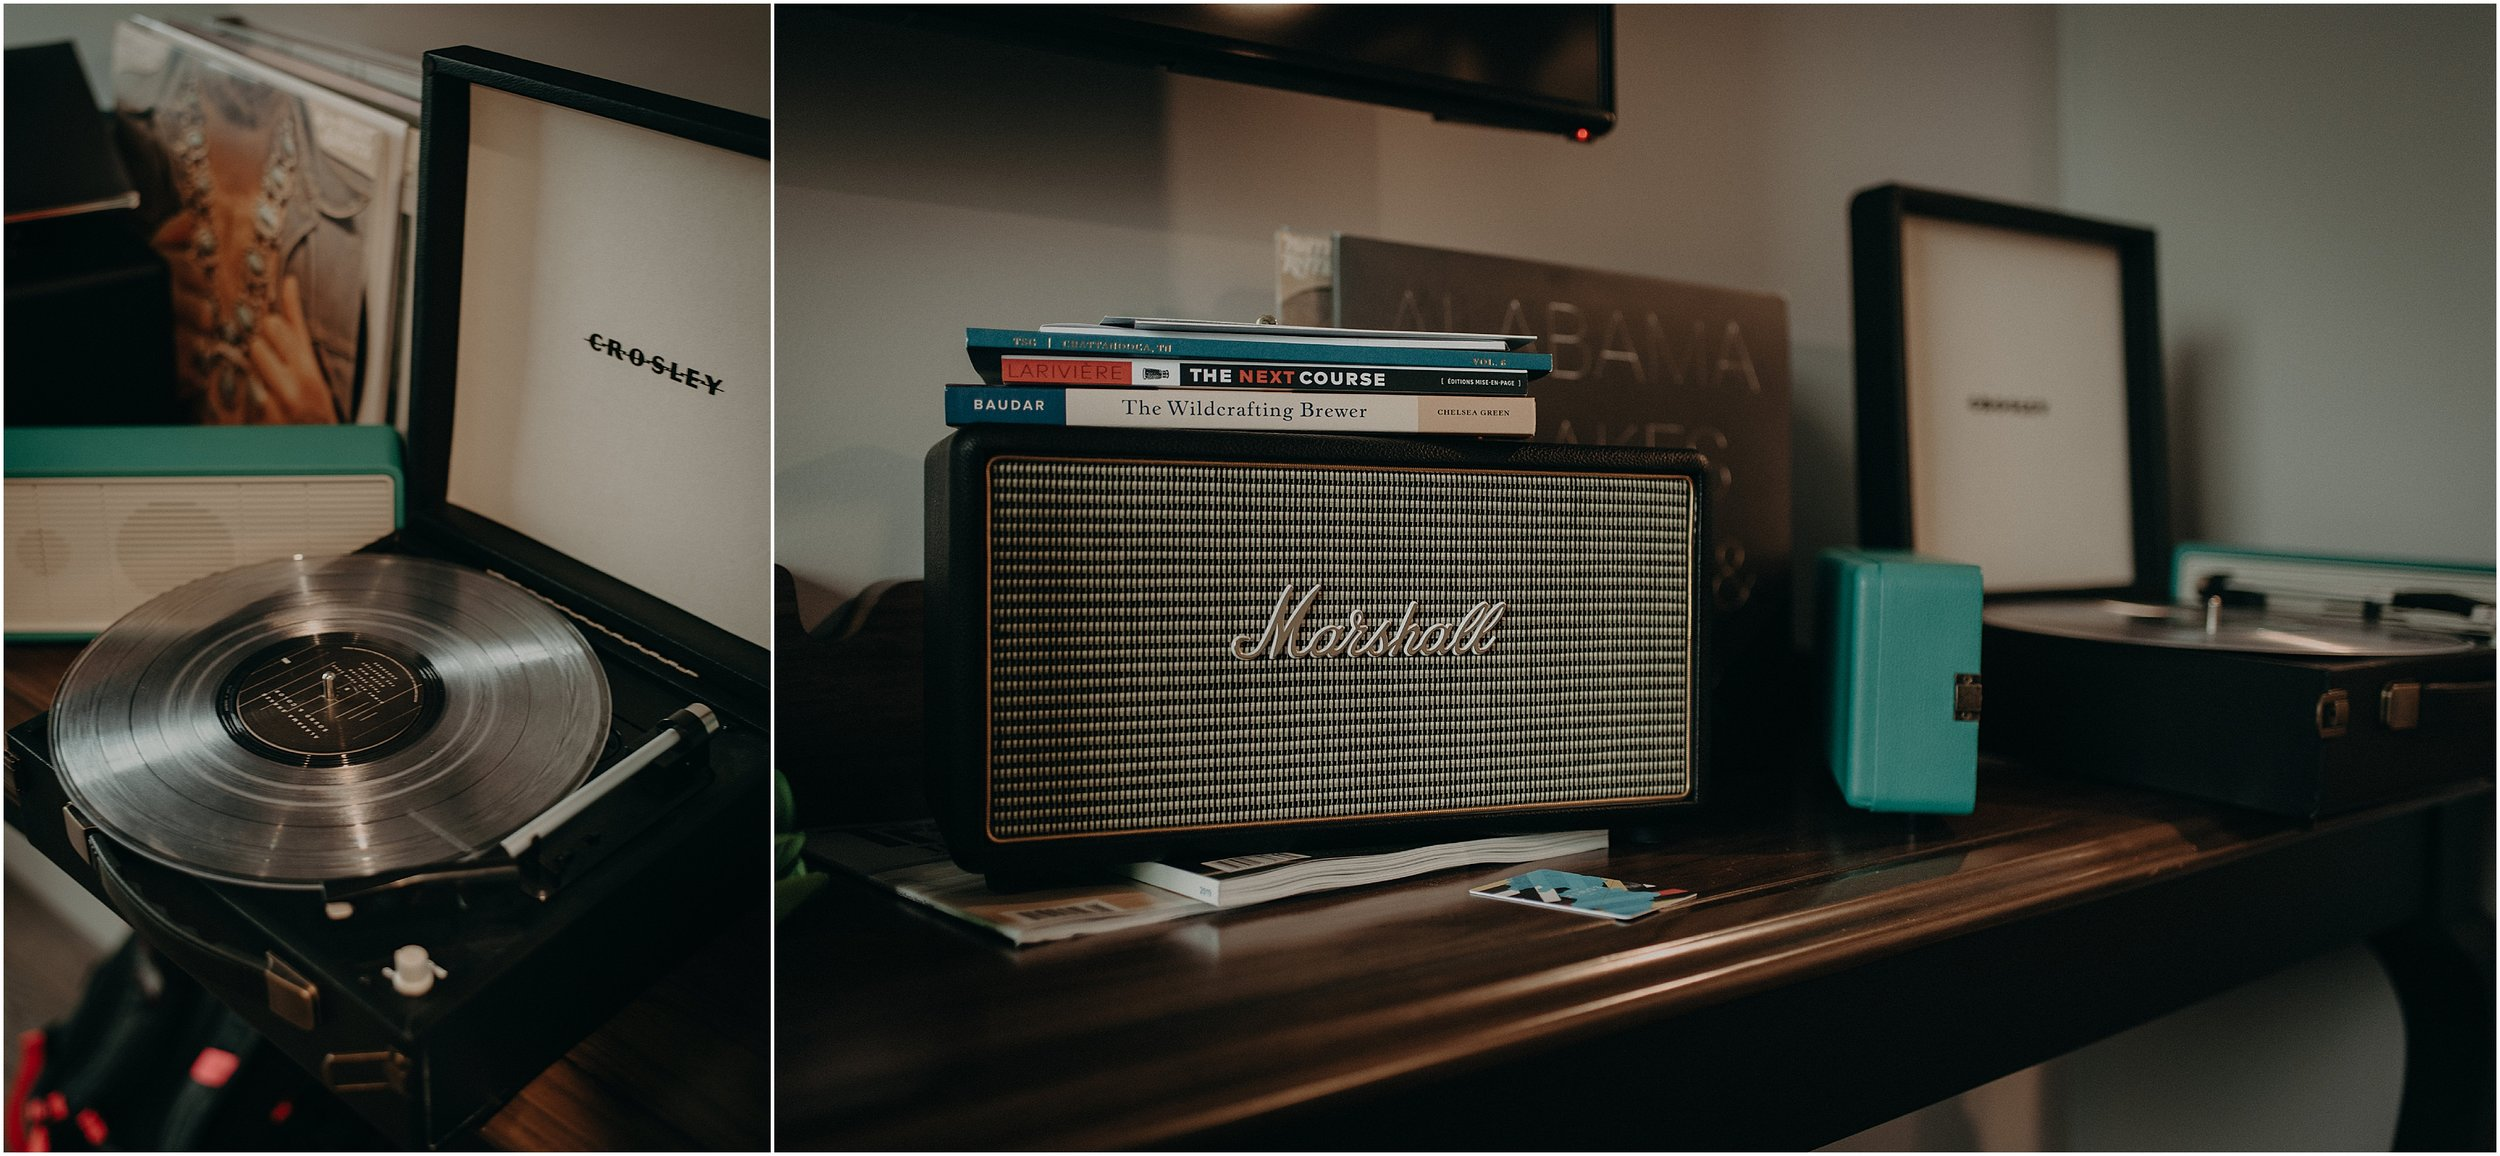 The Edwin Hotel included a vintage-inspired Crosley record player with handpicked records!